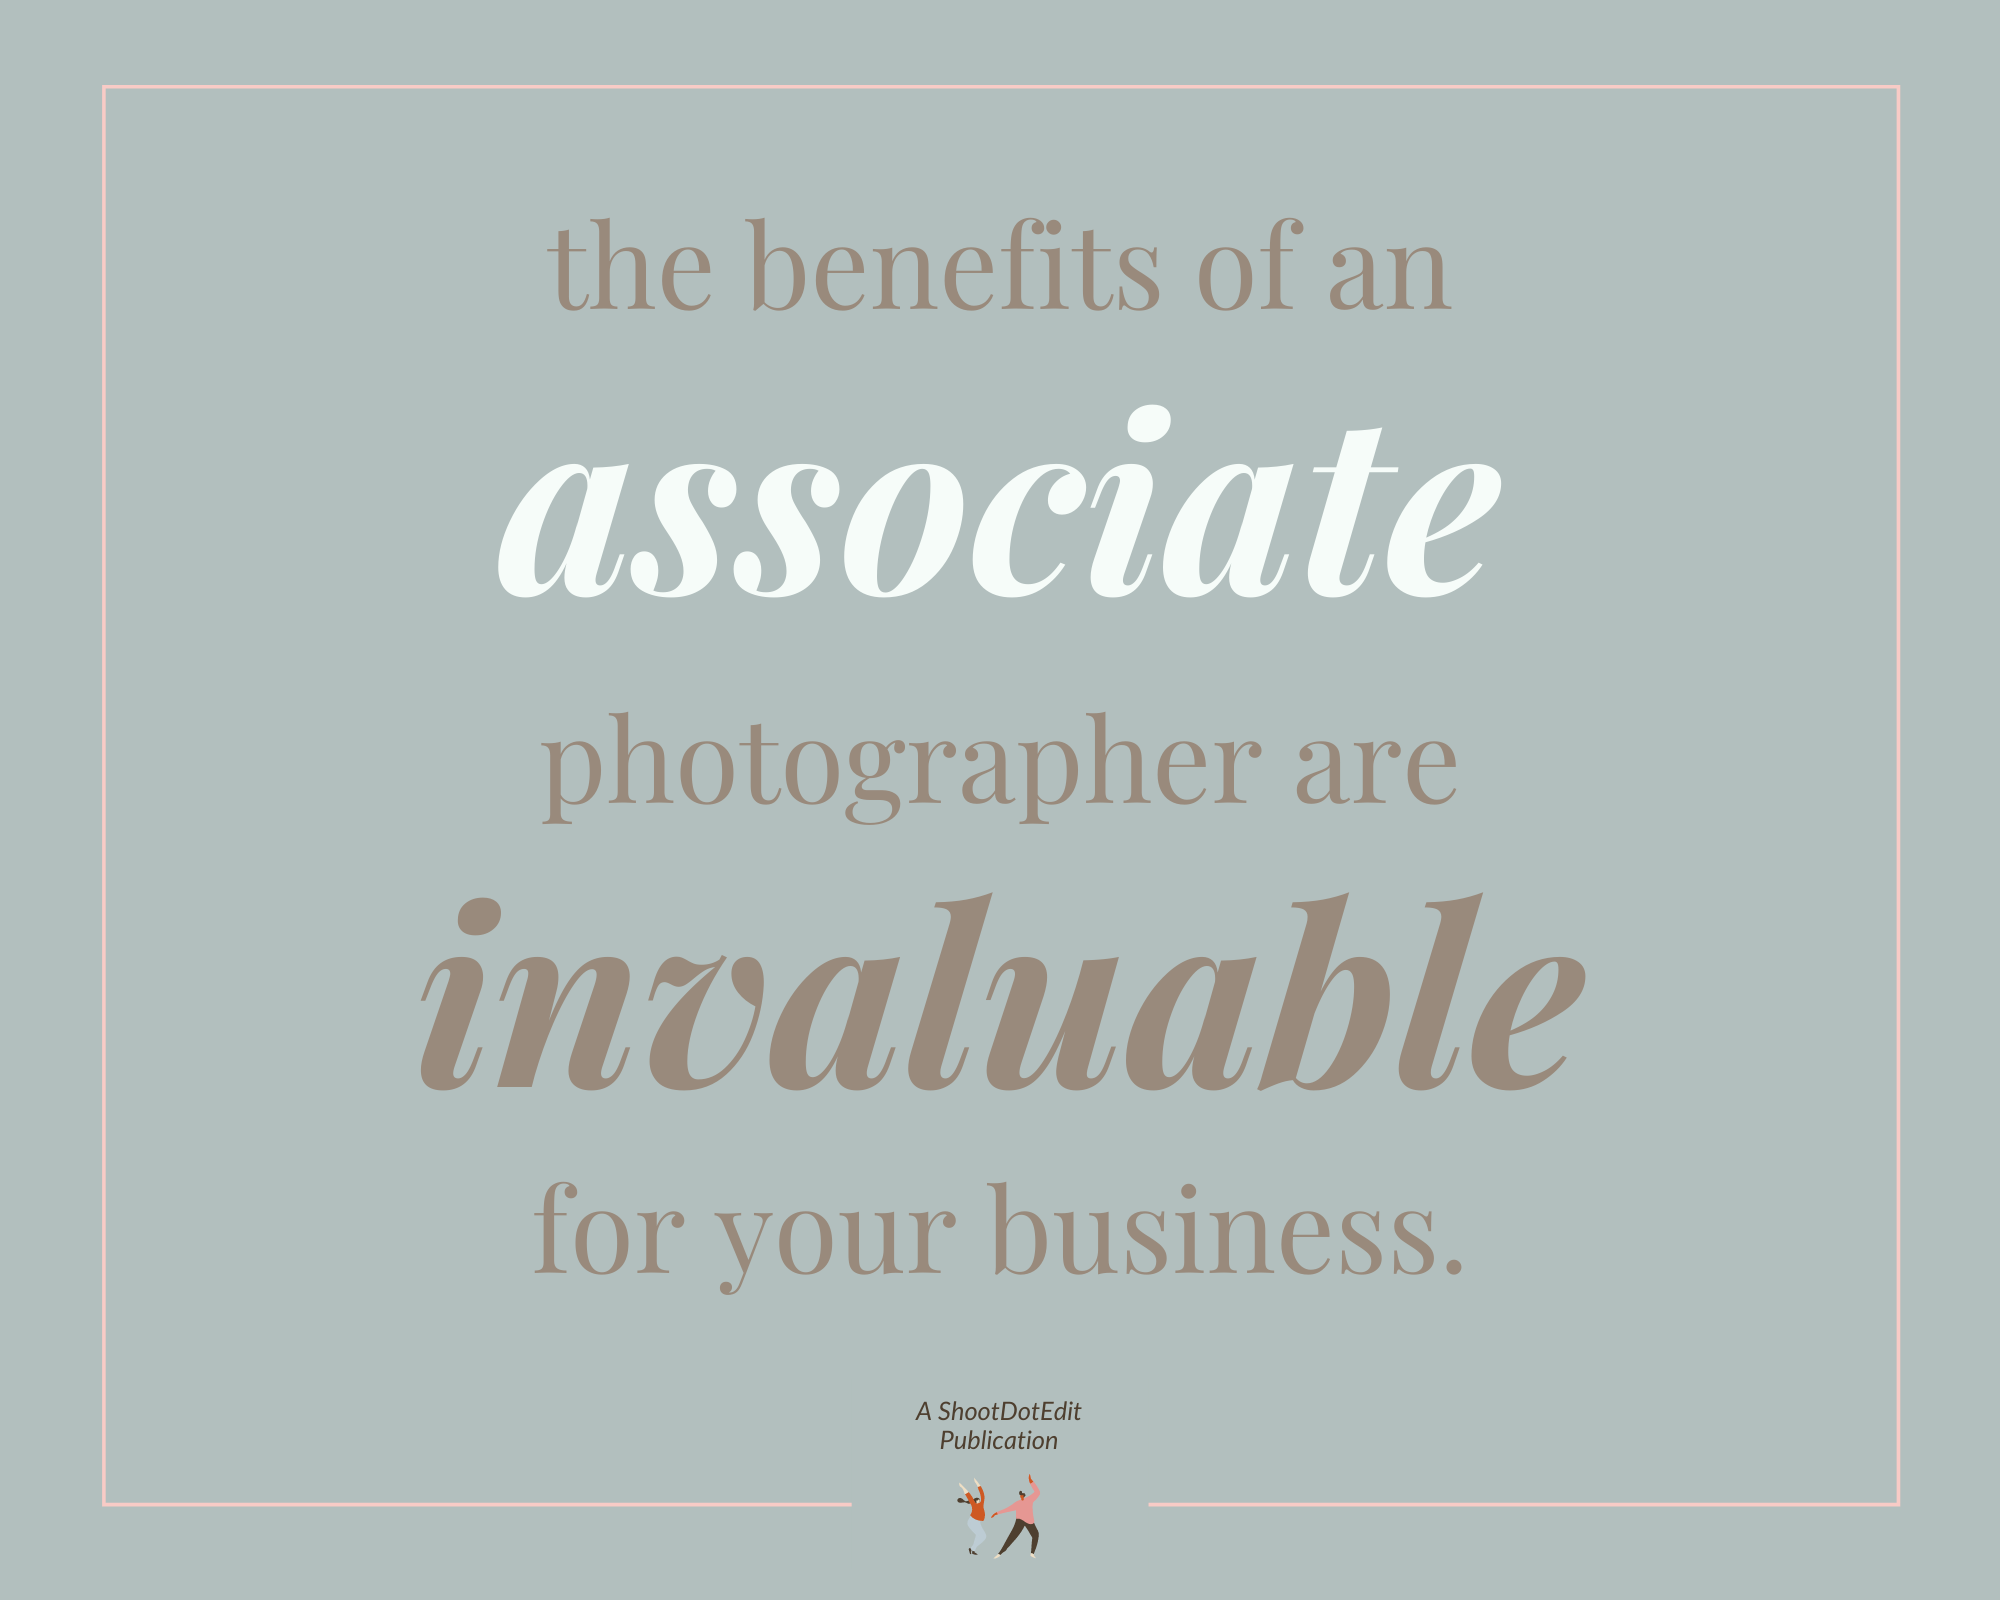 Infographic stating the benefits of an associate are invaluable for your business